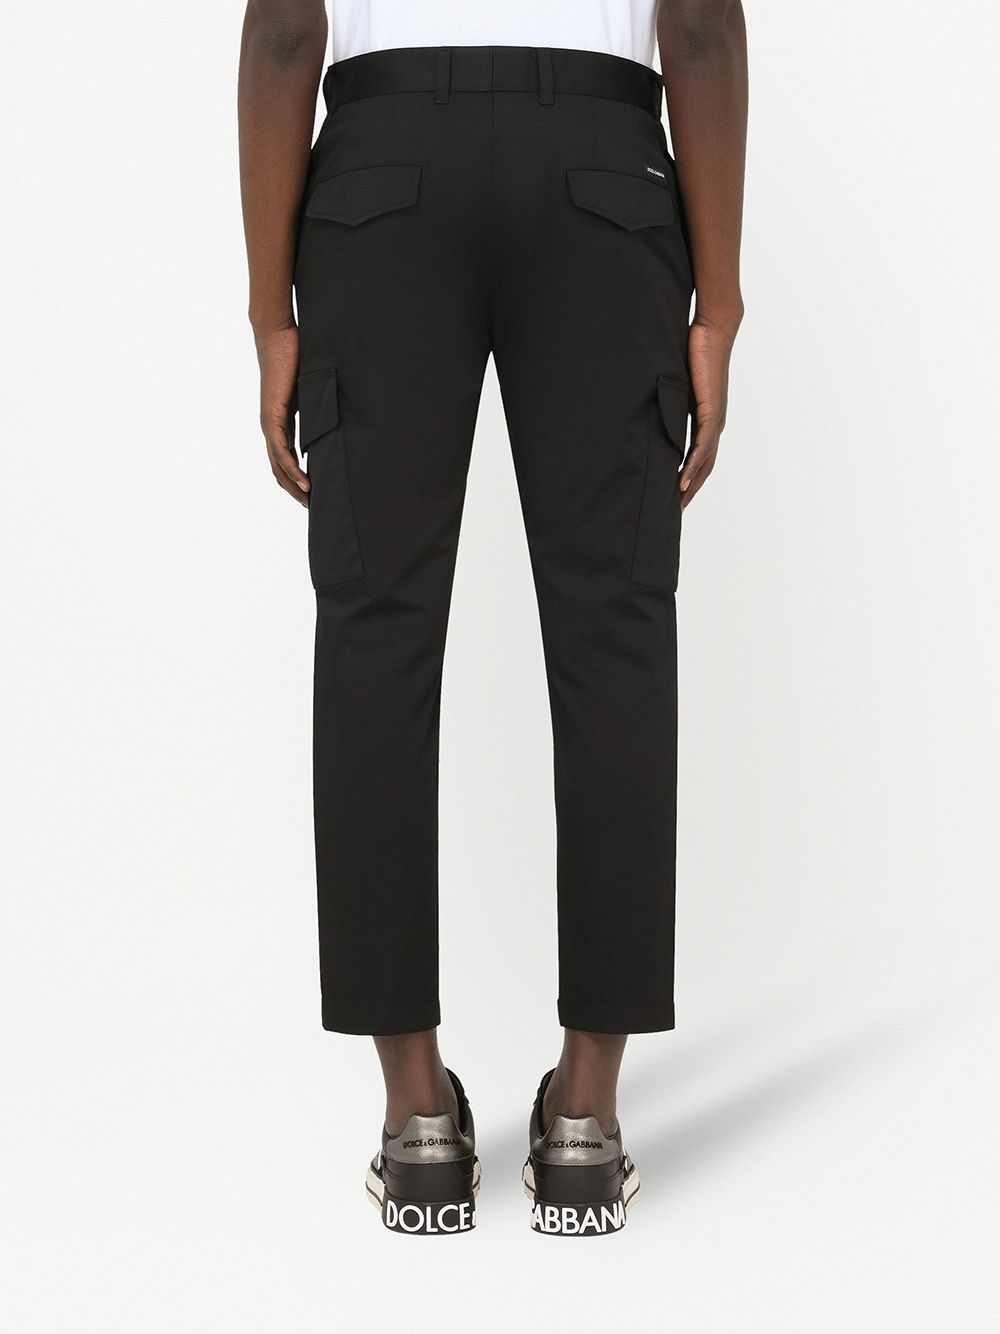 Black stretch-cotton cropped-leg cargo trousers  featuring piped-trim detailing DOLCE & GABBANA |  | GWBWET-FUFJRN0000